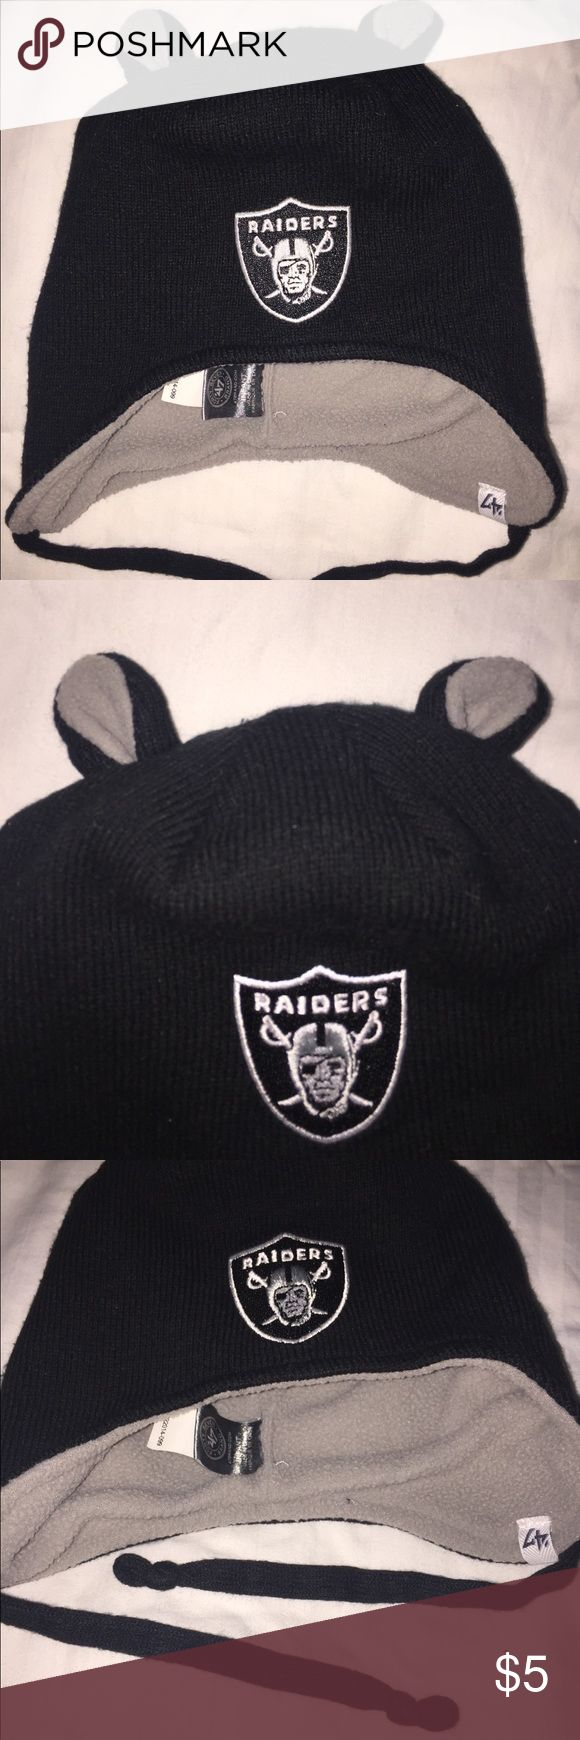 ❤️Oakland Raiders Infant Beanie Black and gray infant beanie with little ears and Oakland Raiders emblem. Soft and very comfy. No size listed on item, but probably fits size 6-12 months. GUC, no stains or holes. Accessories Hats